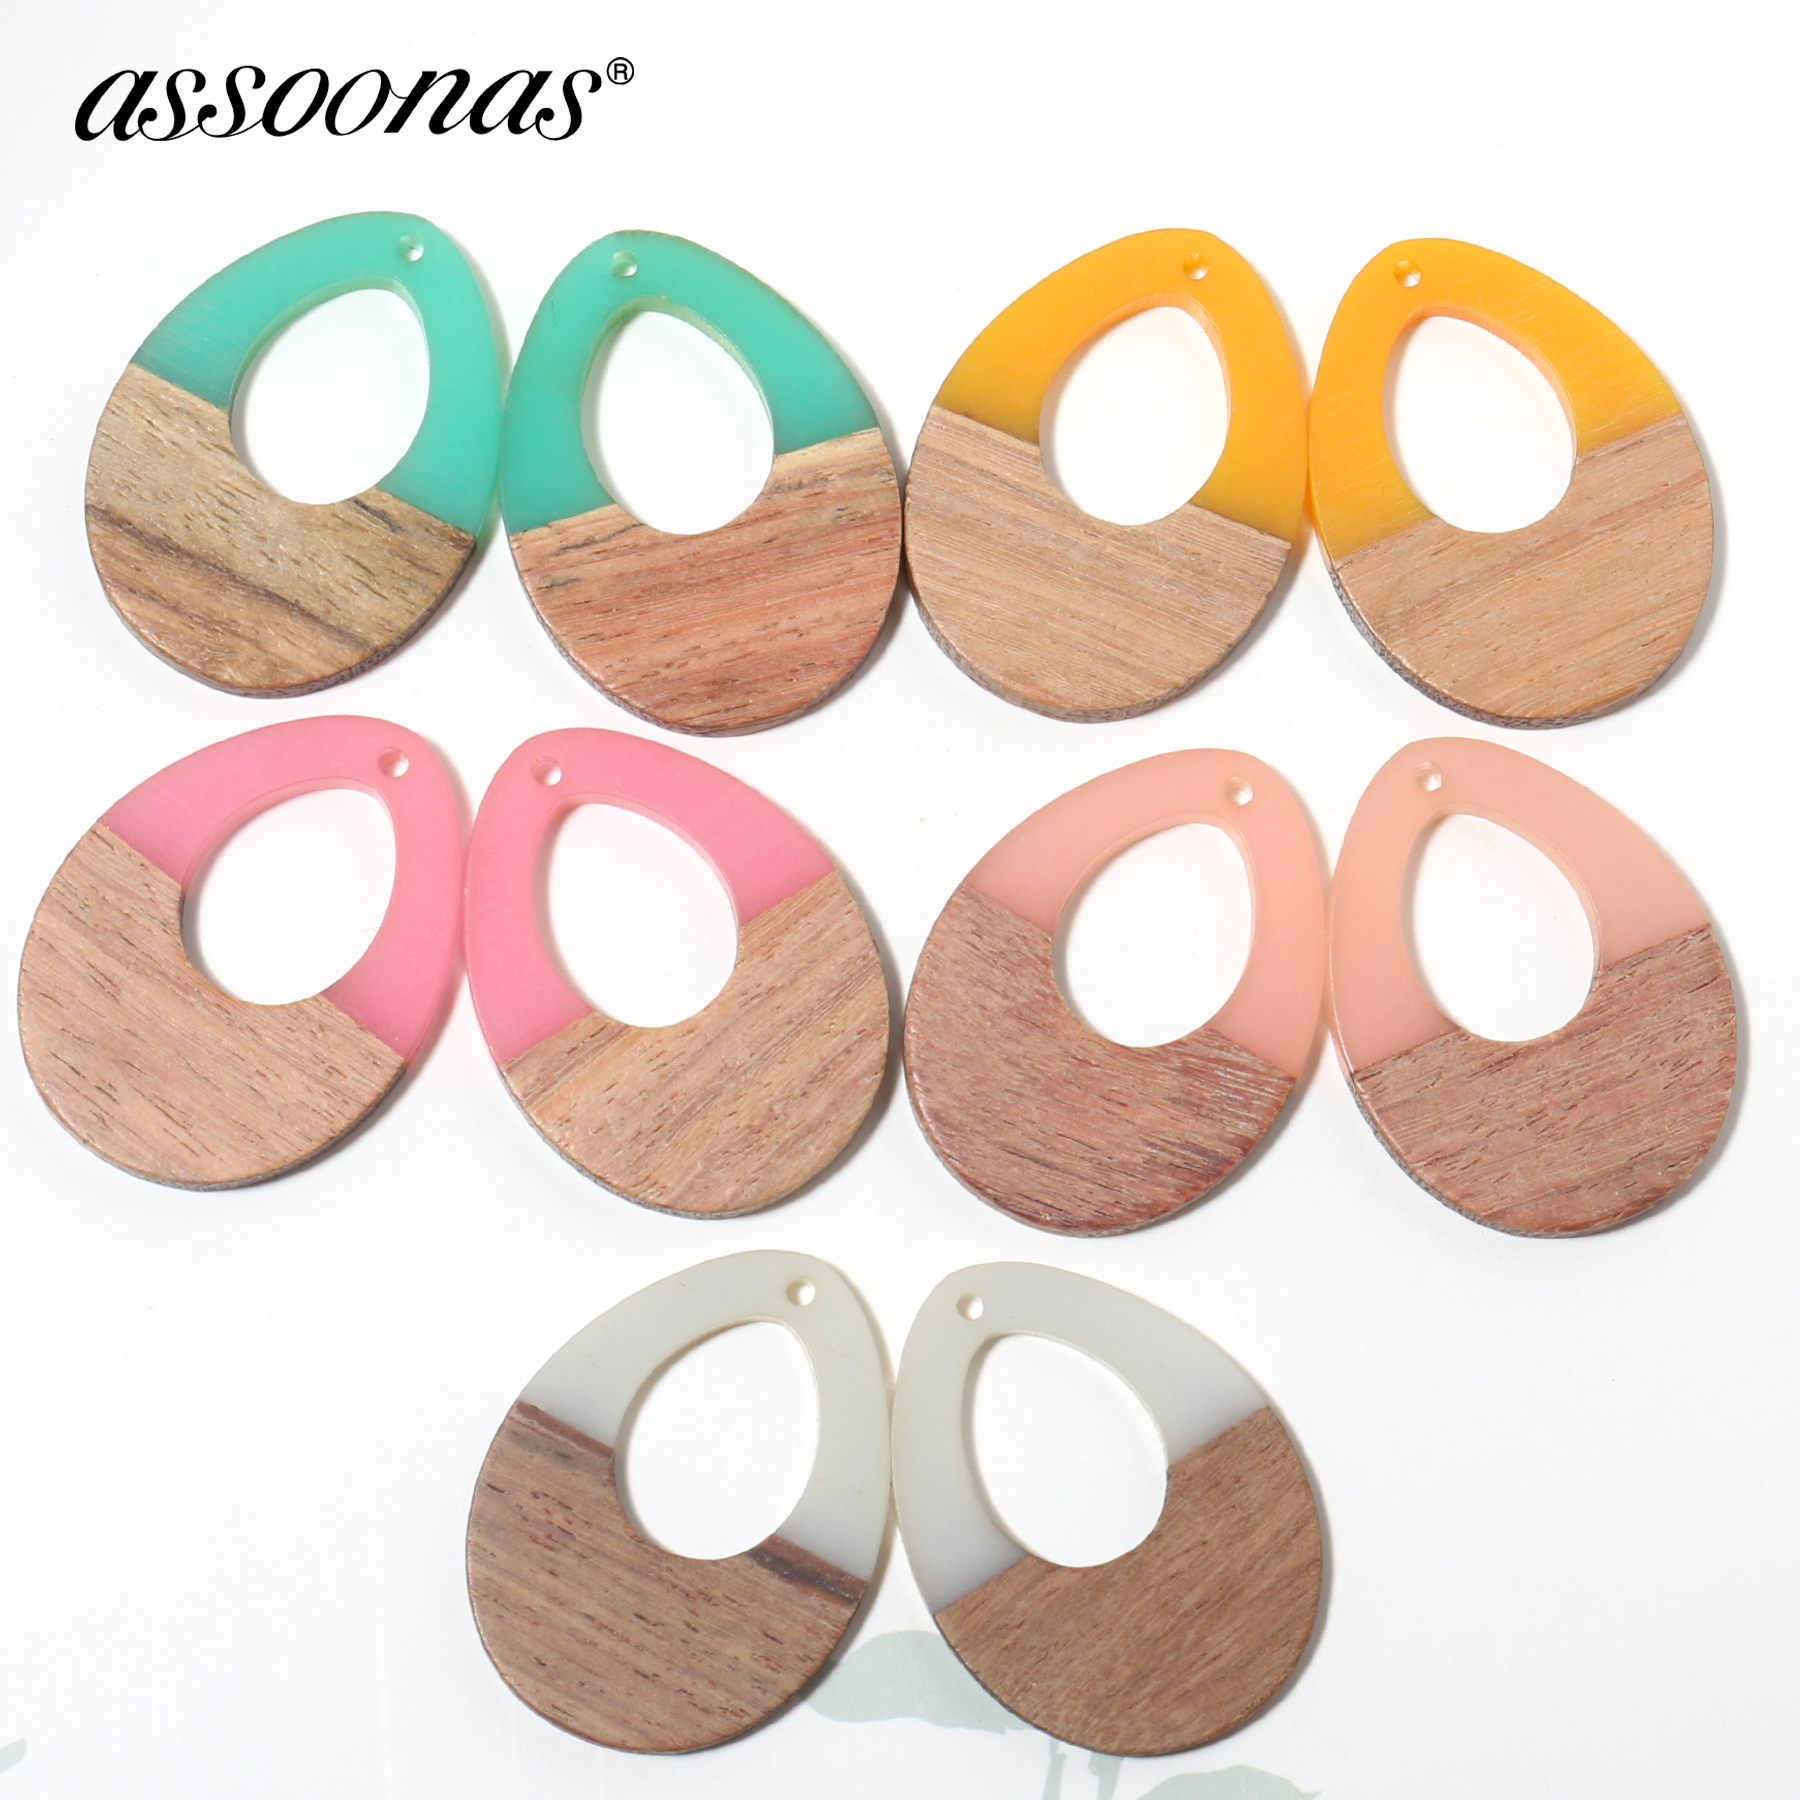 Assoonas M343,jewelry Accessories,jewelry Findings,wood Acrylic Earrings Pendant,hand Made,diy Earrings,jewelry Making,10pcs/lot